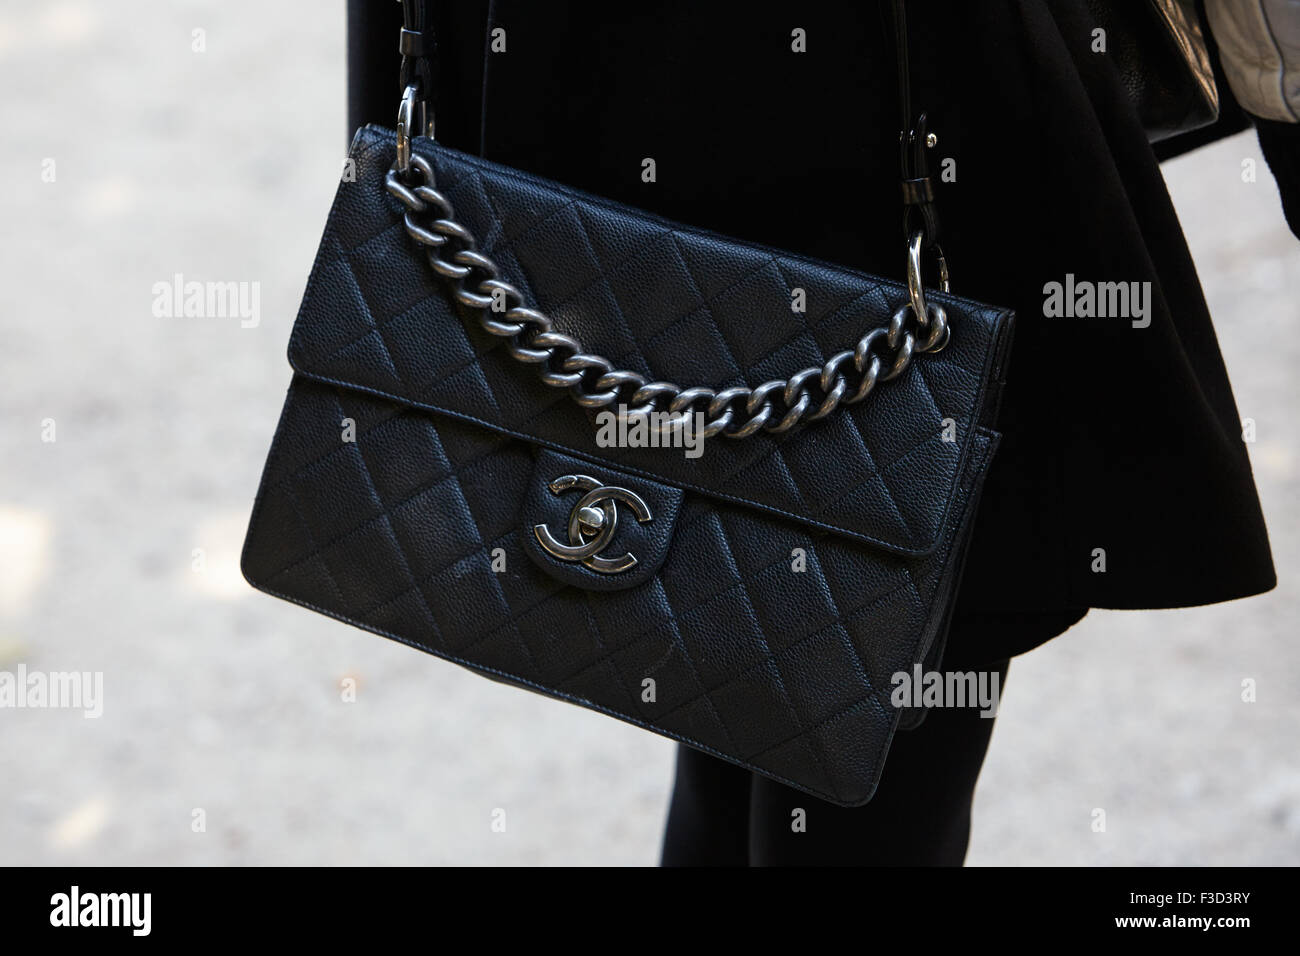 5c904e1e5b37 PARIS - SEPTEMBER 30: Black leather Chanel bag before Yang Li show, Paris  Fashion